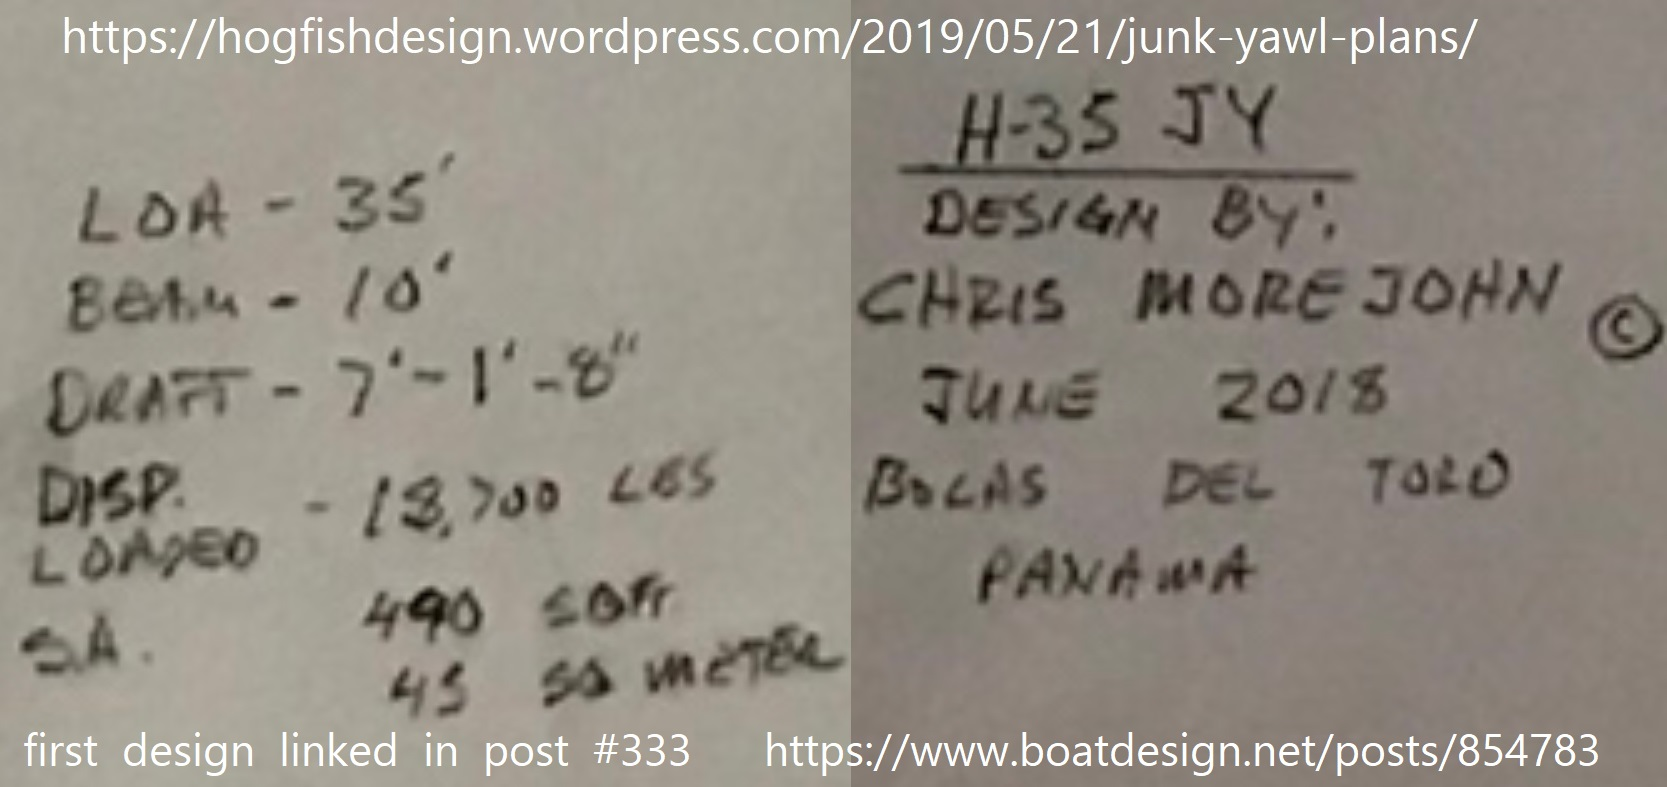 Chris Morejohn Hogfish Design some specs from first design linked in post 333.jpg